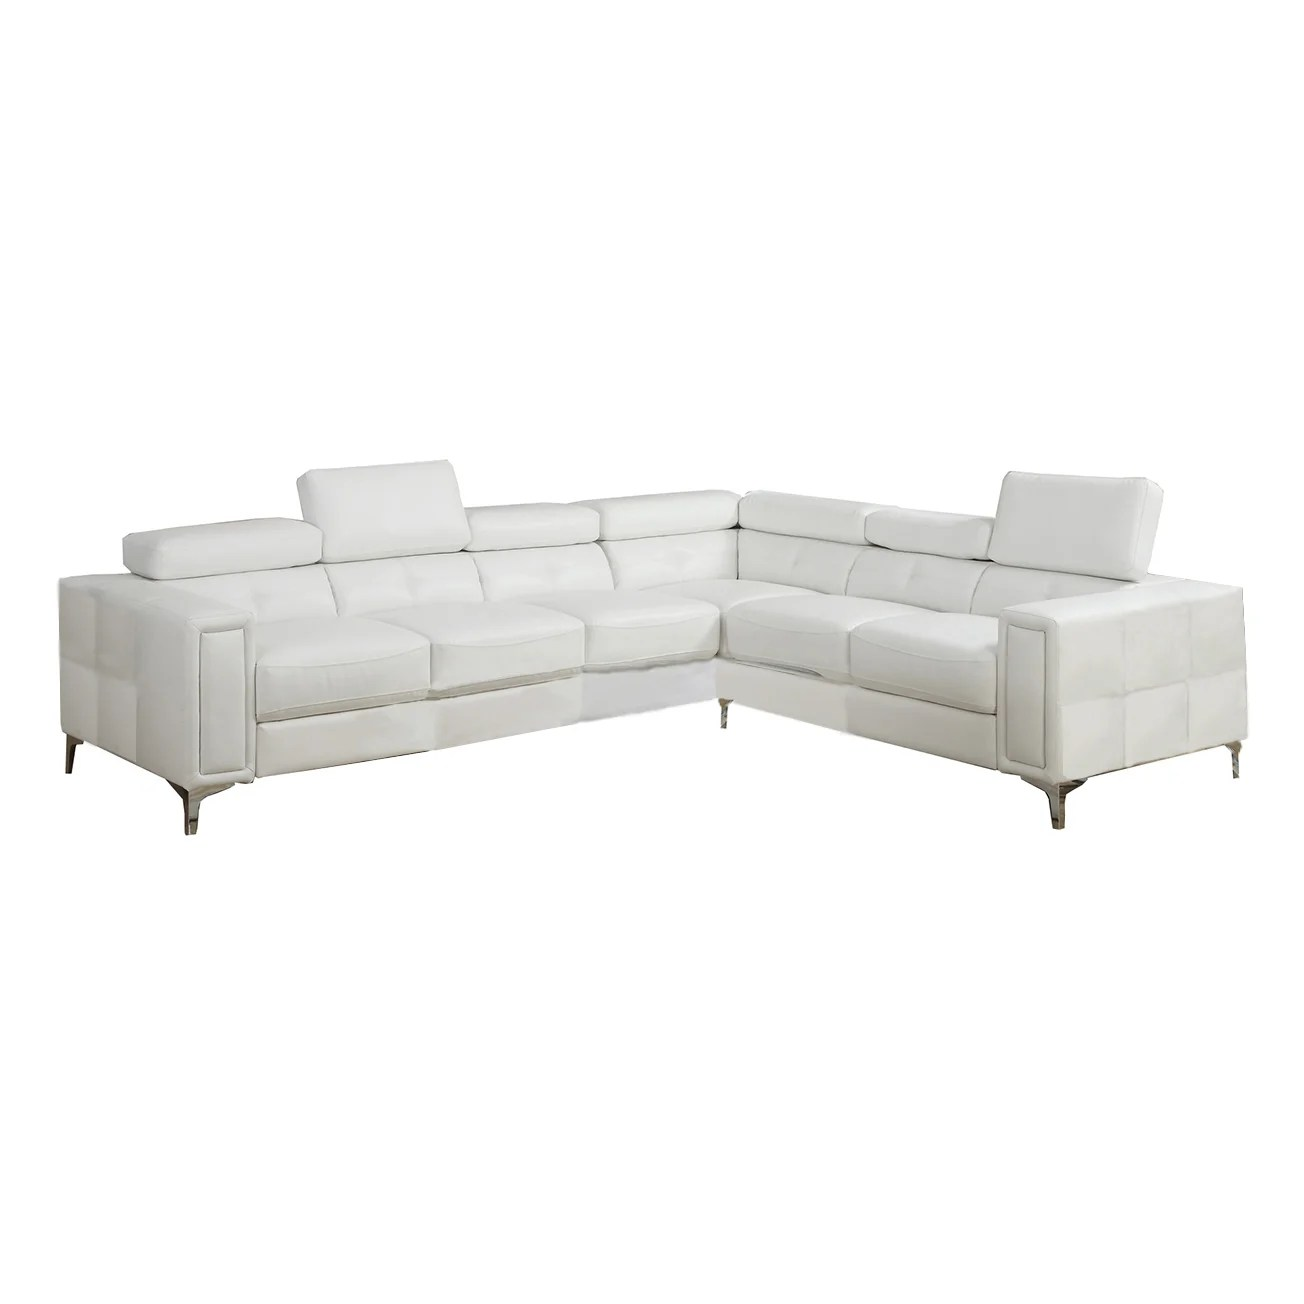 bobkona sectional sofa embly instructions cheap sets under 300 claxton and reviews allmodern